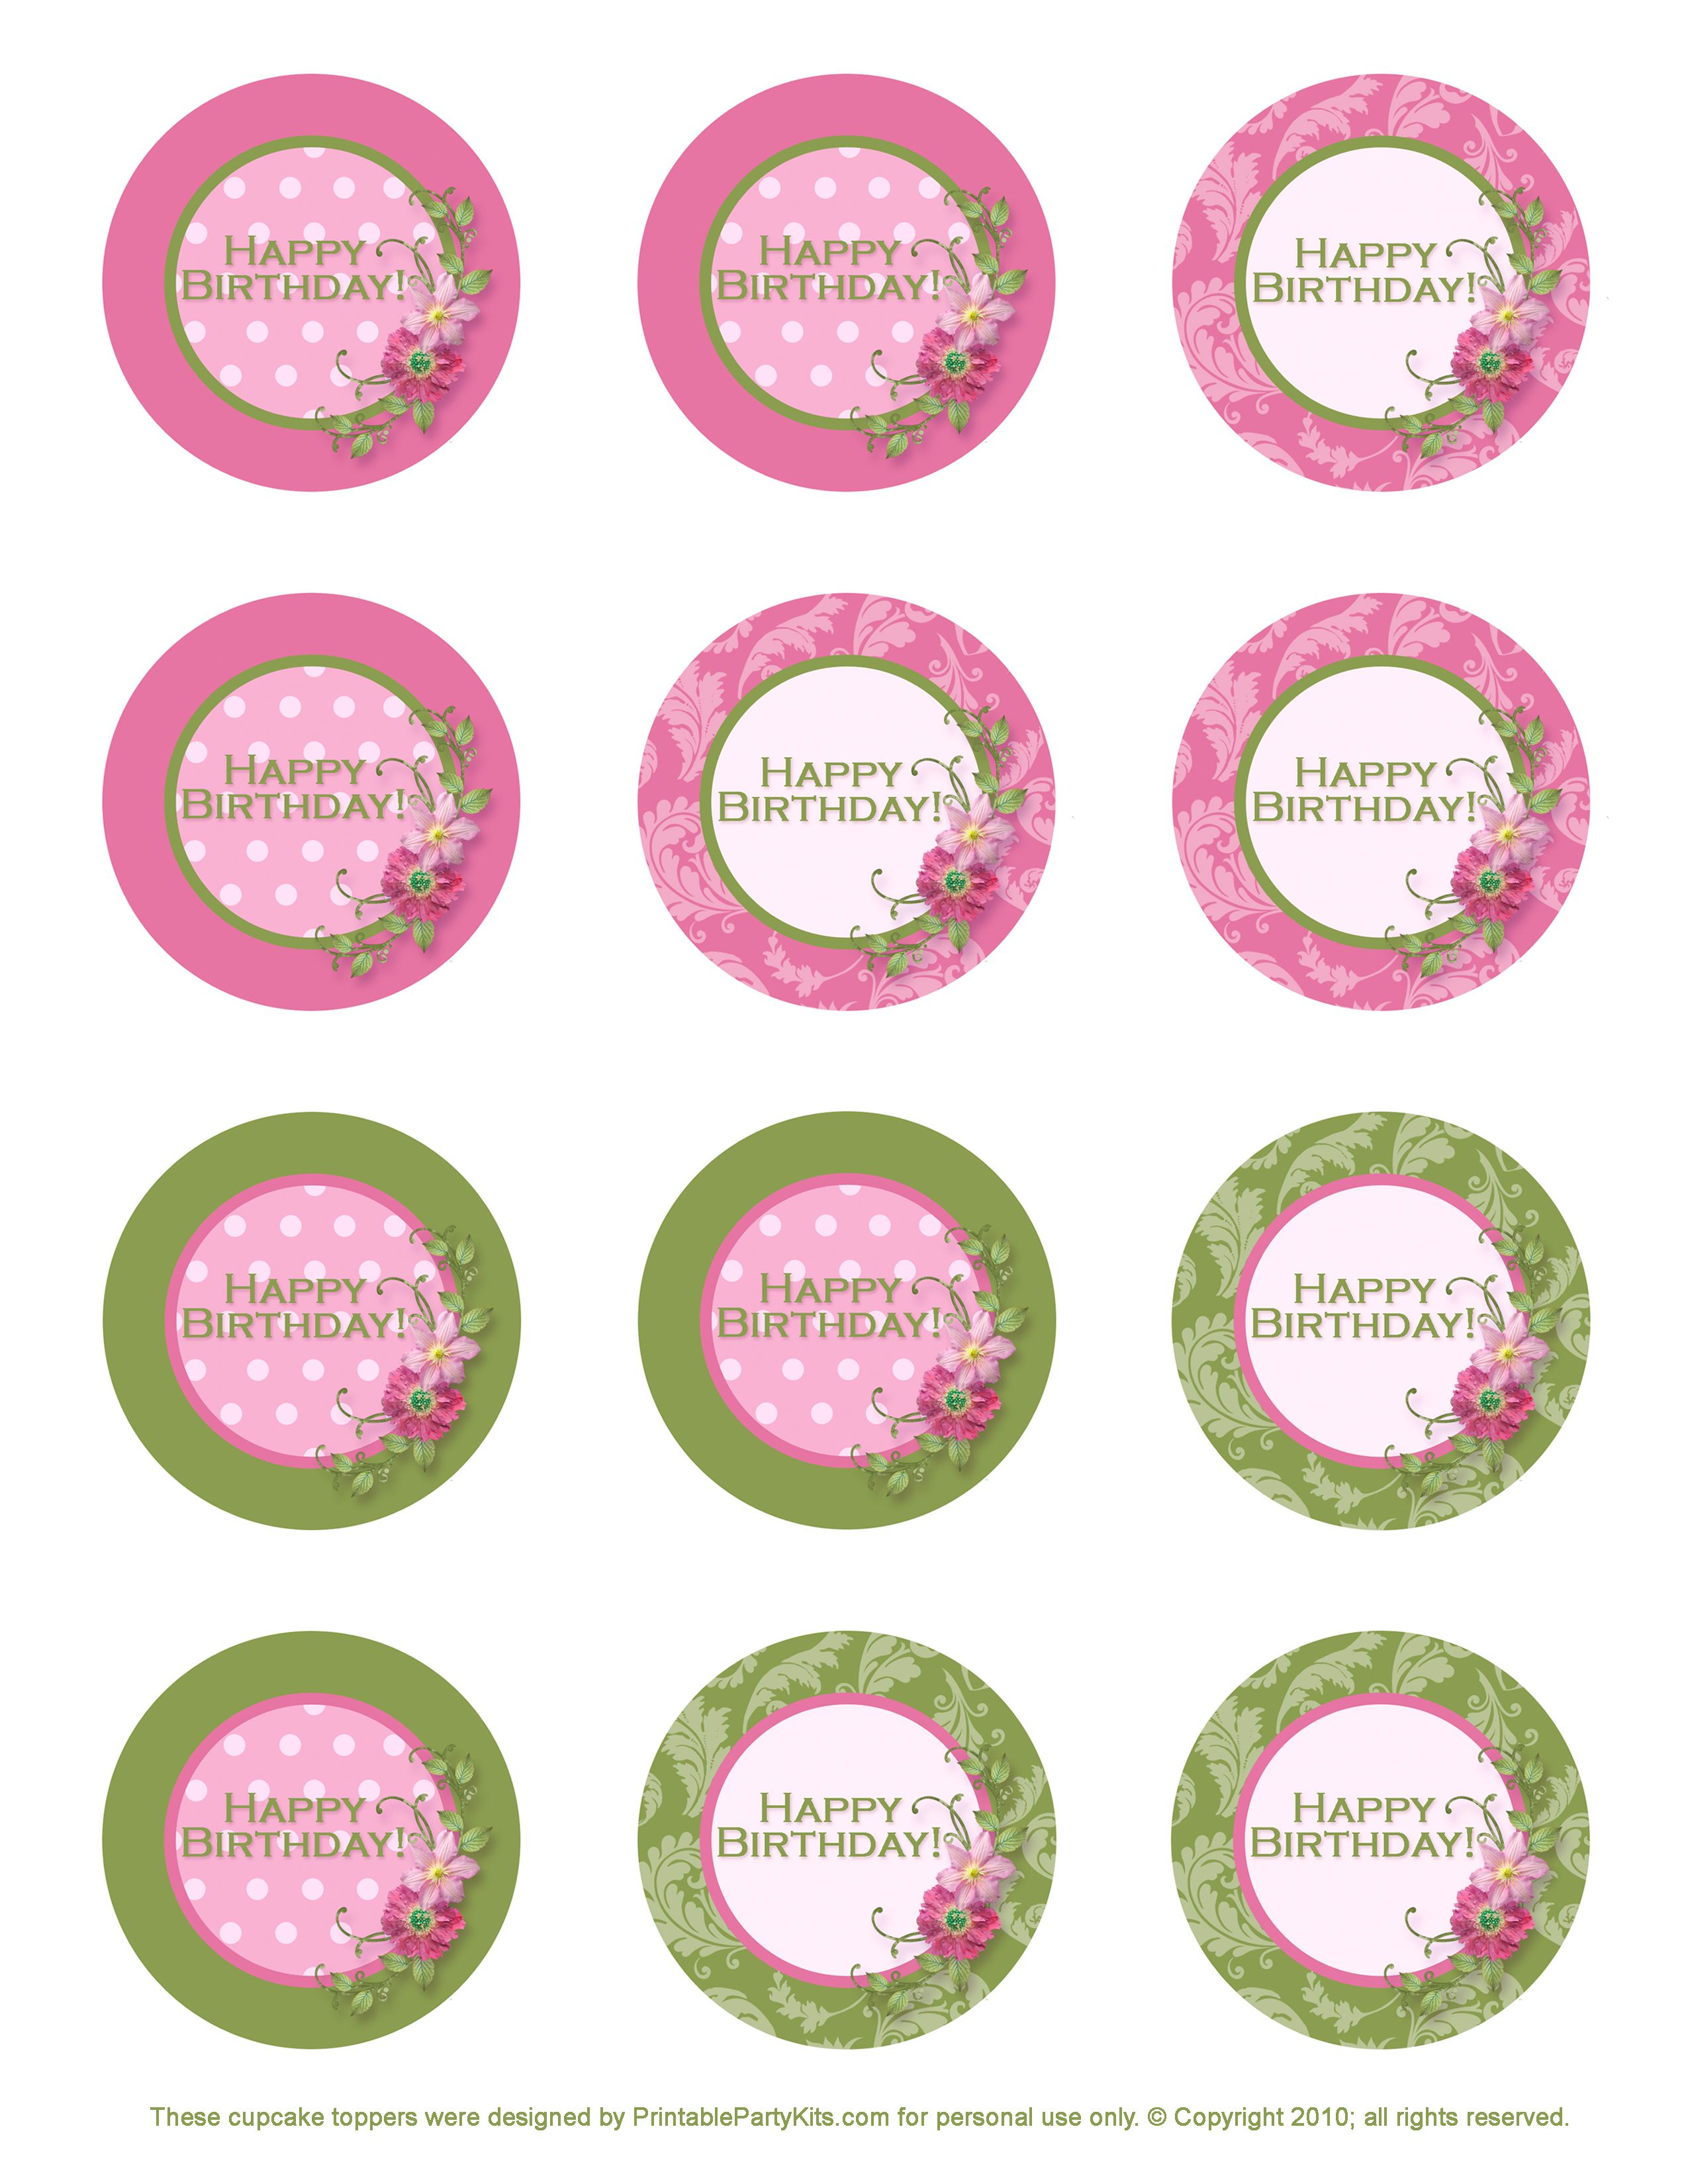 Free Printable Birthday Cupcake Toppers | Crafts | Pinterest - Free Printable First Communion Cupcake Toppers